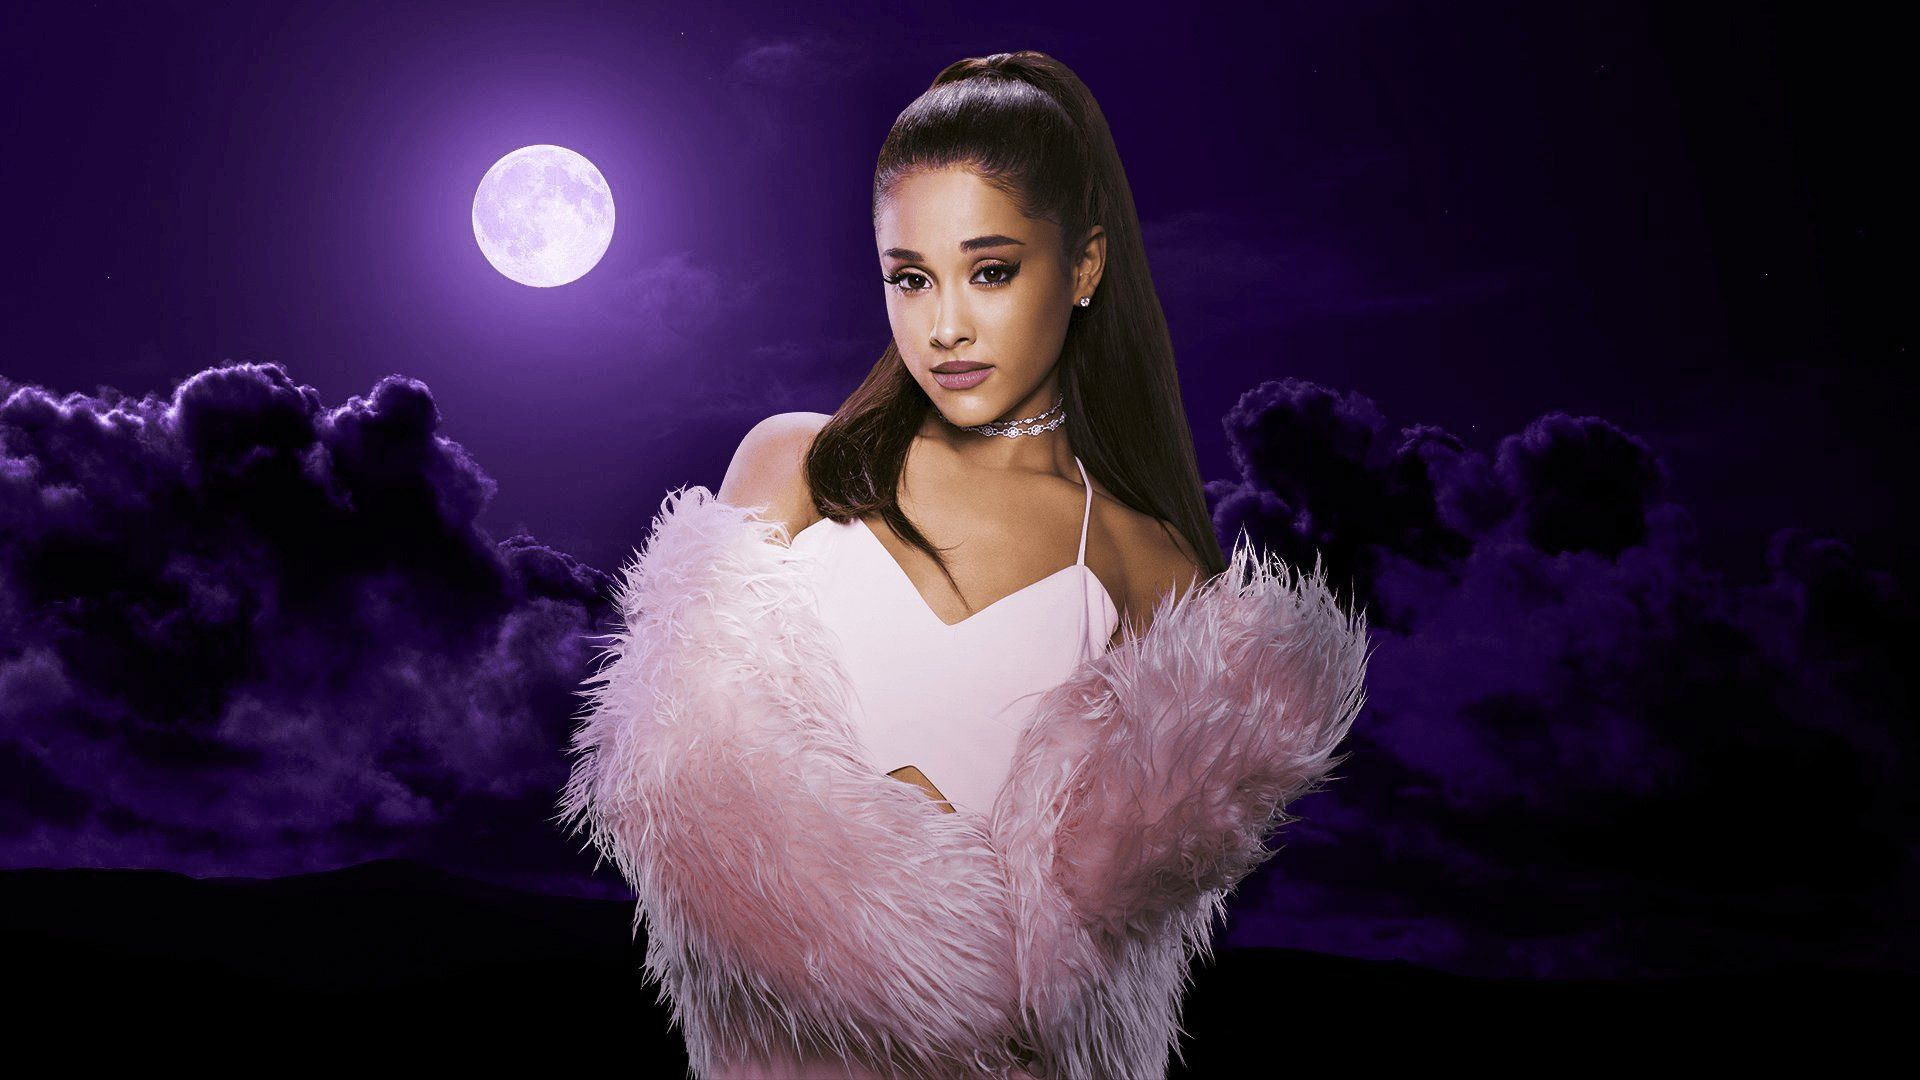 ariana grande wallpapers for android ~ desktop wallpaper box